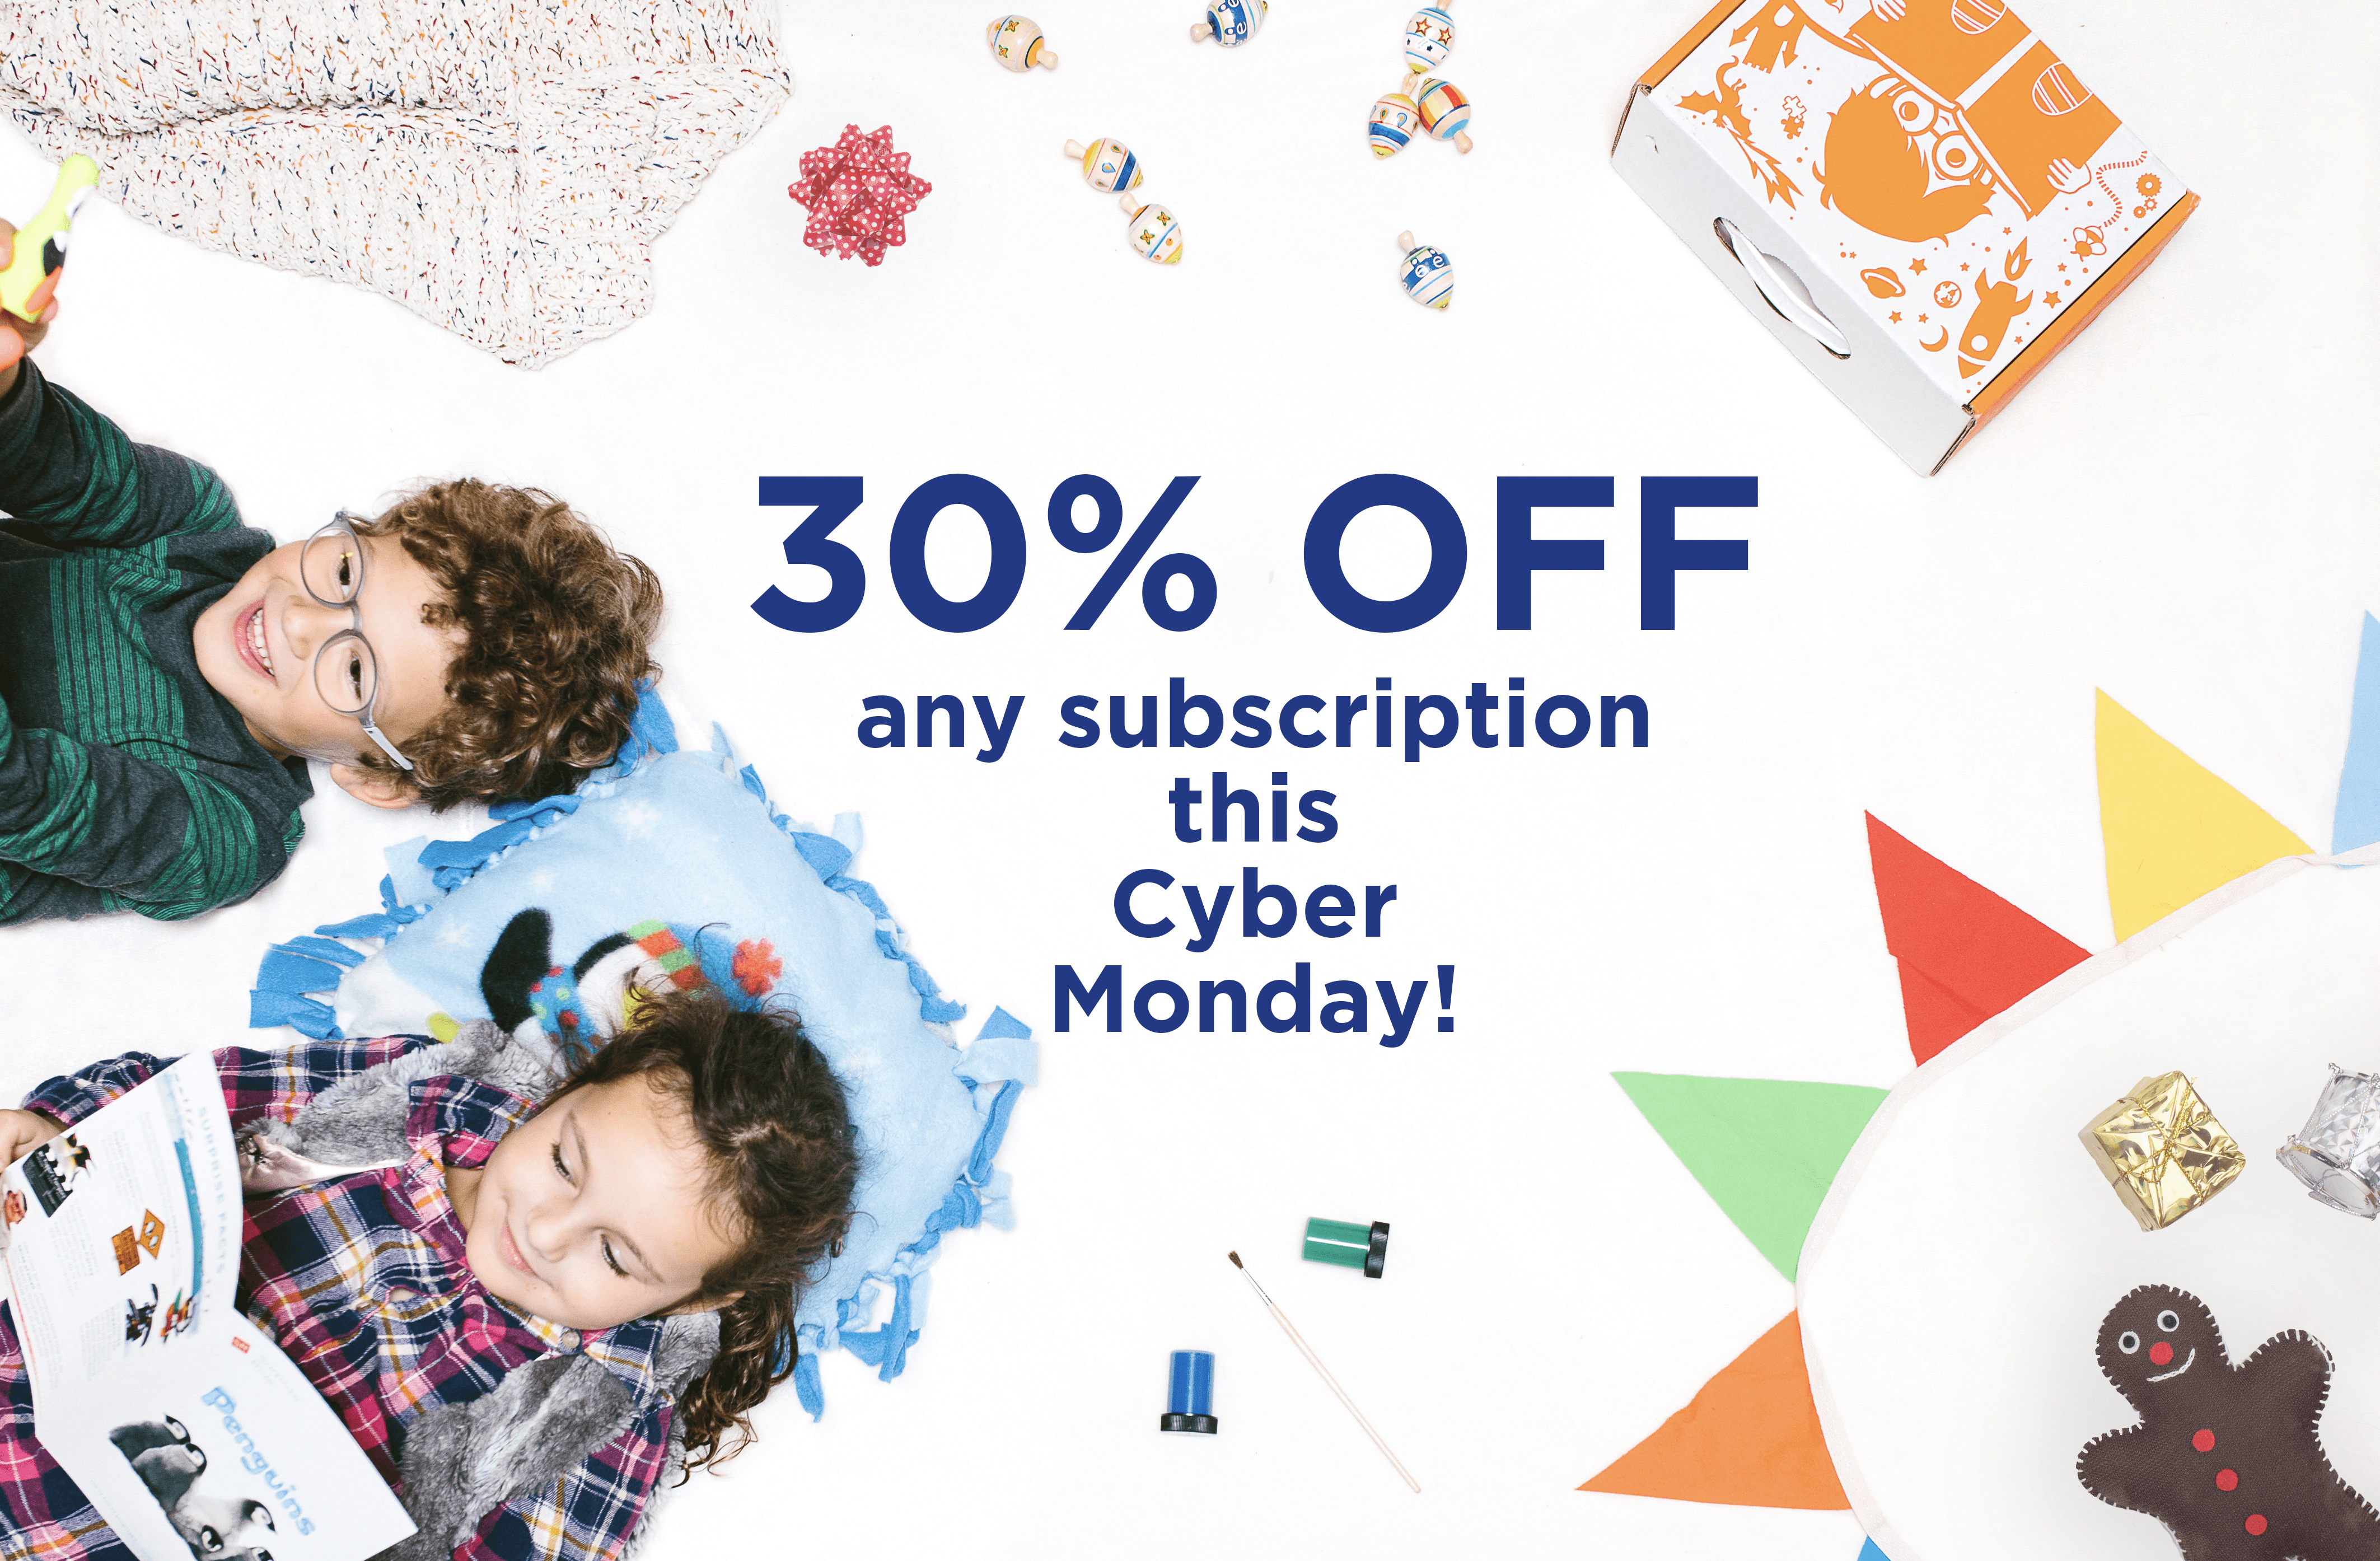 Surprise Ride Cyber Monday 30% Off Deal!